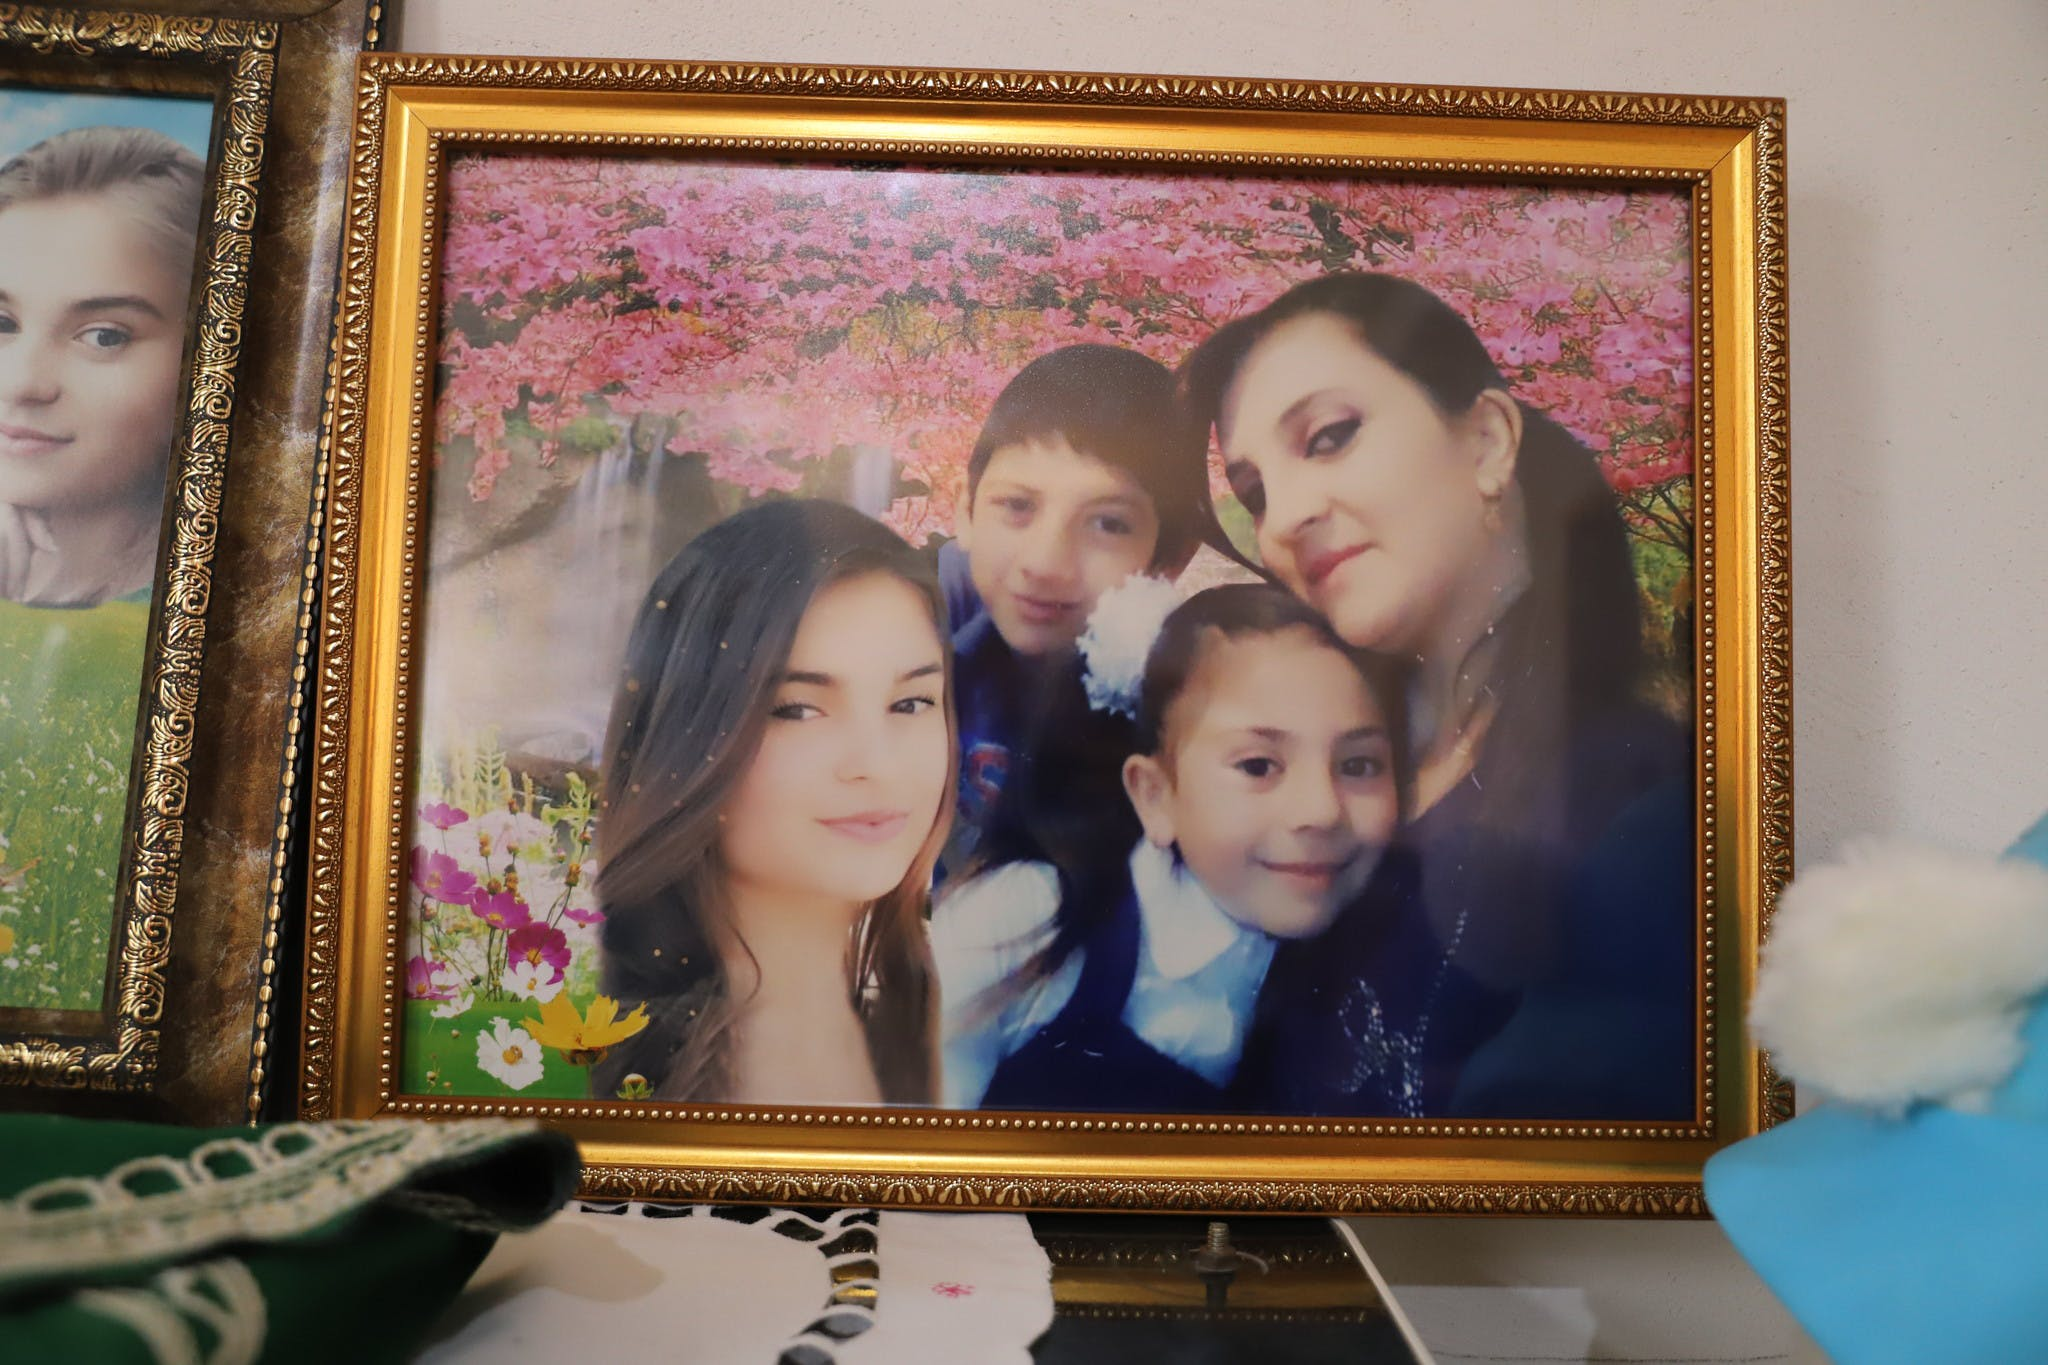 Four victims of the Ramiz family who were killed in the Mukhtar Hajiyev neighbourhood of GANJA, in Azerbaijan, by a Scud ballistic missile launched by Armenian forces, on 17 October 2020 which killed 21 civilians and destroyed dozens of houses